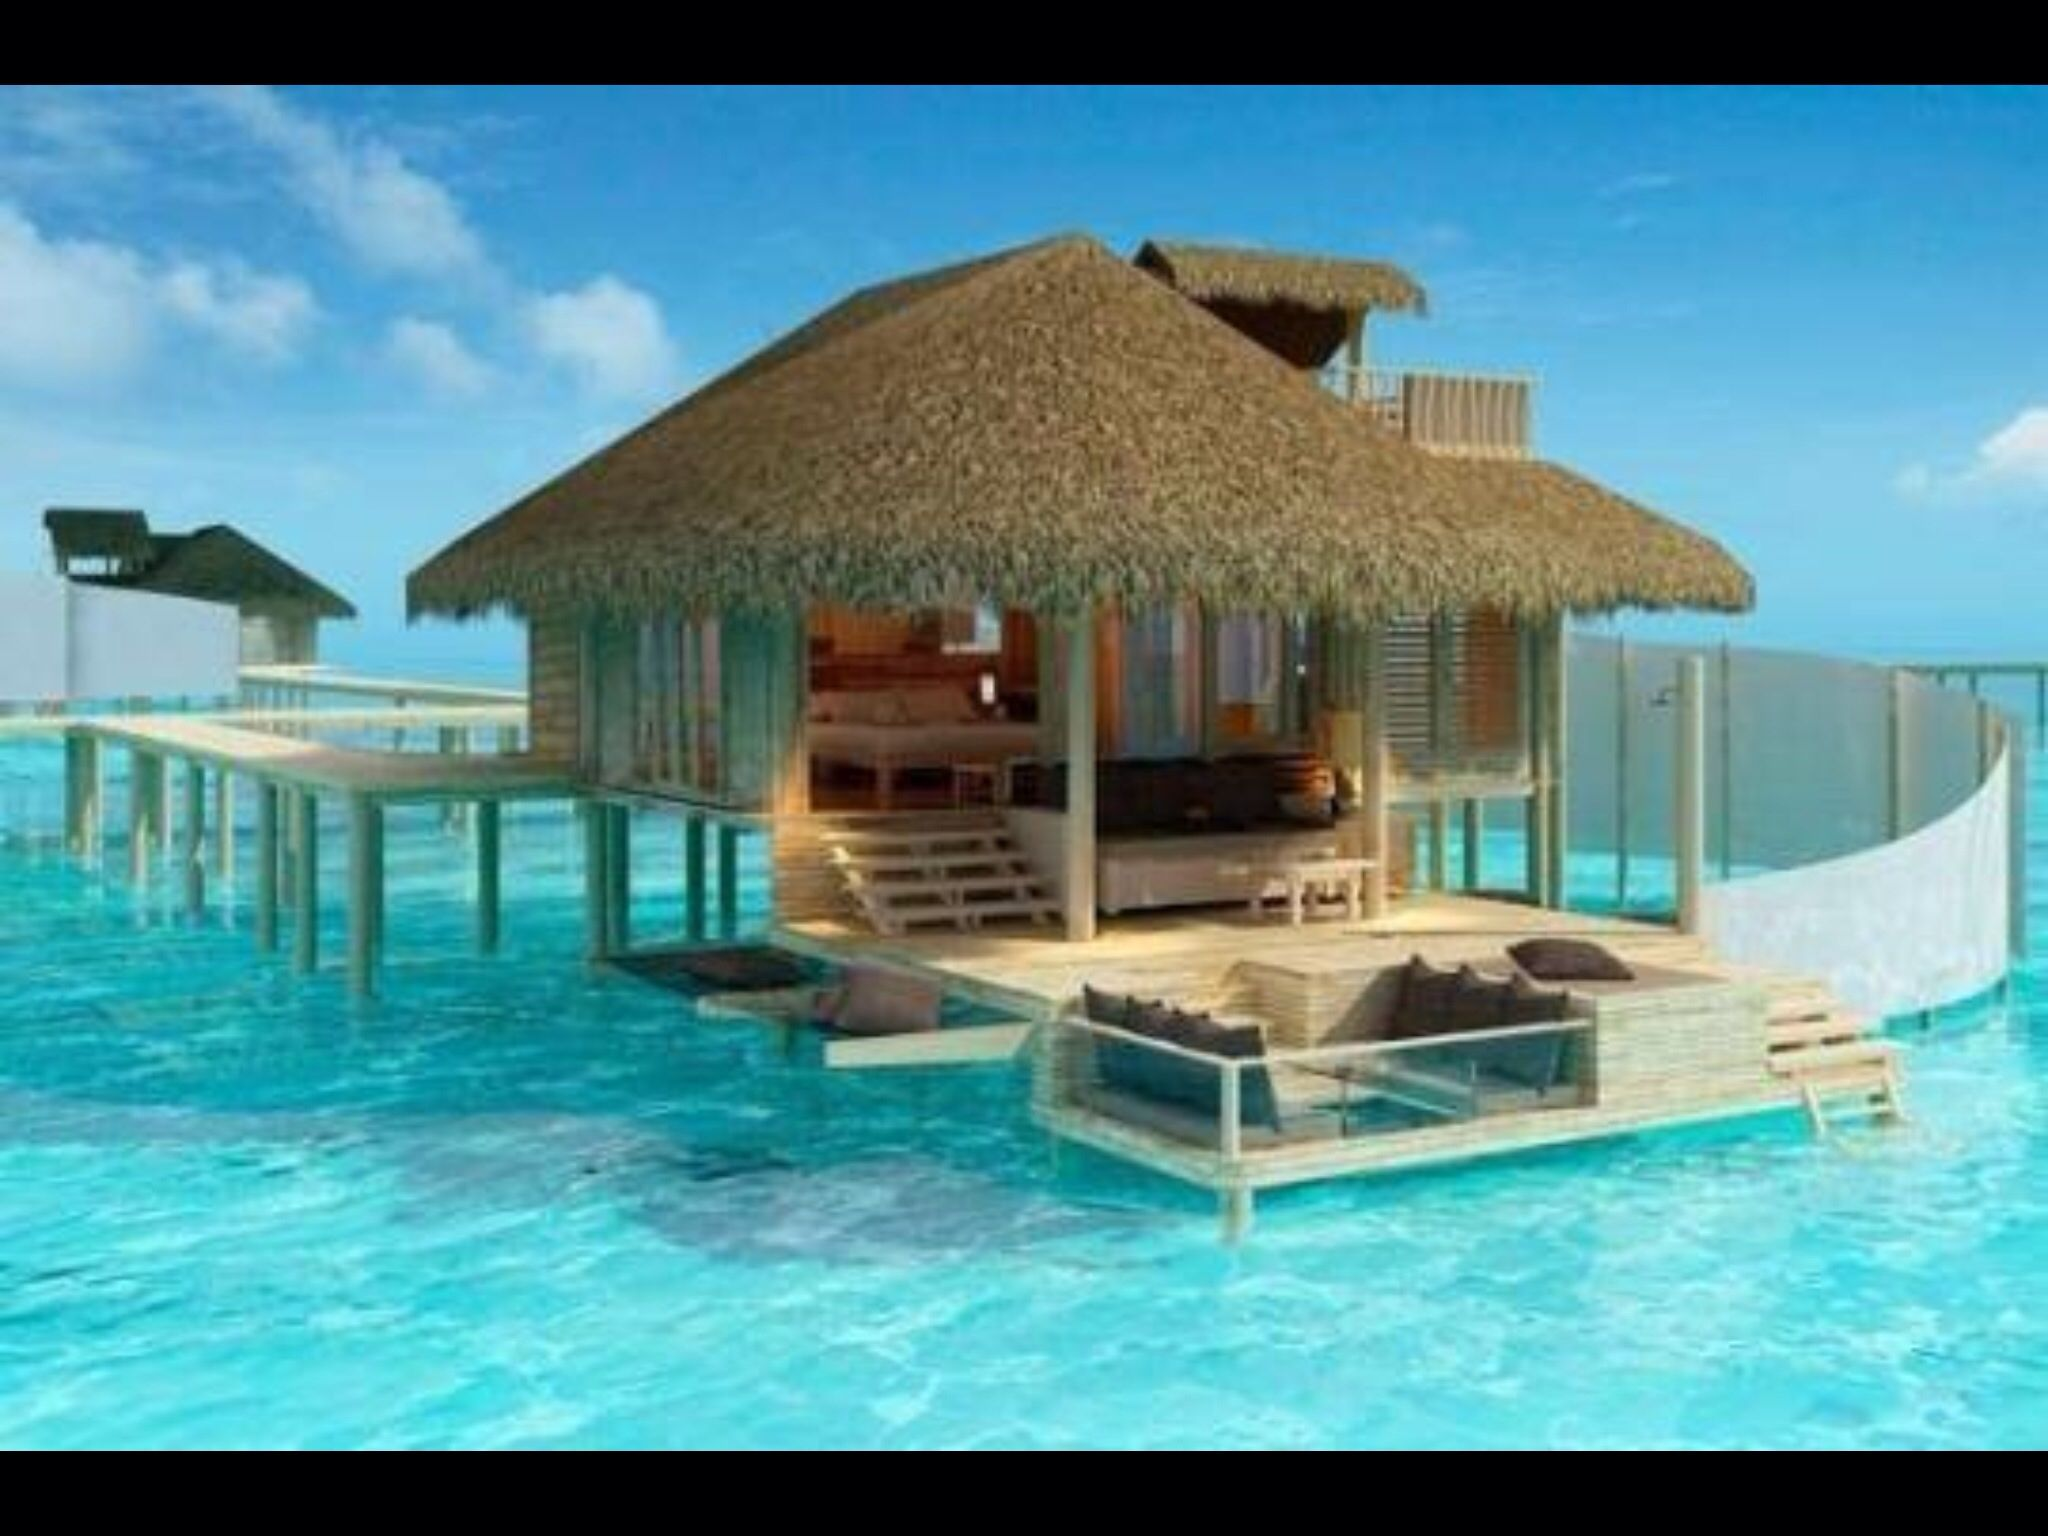 Beatiful Beach House Blue Water Fiji 7 Day Free Trial Offer Put Your Wallet Away Guaranteed To Make You Money Or We Pay 100 Bucks